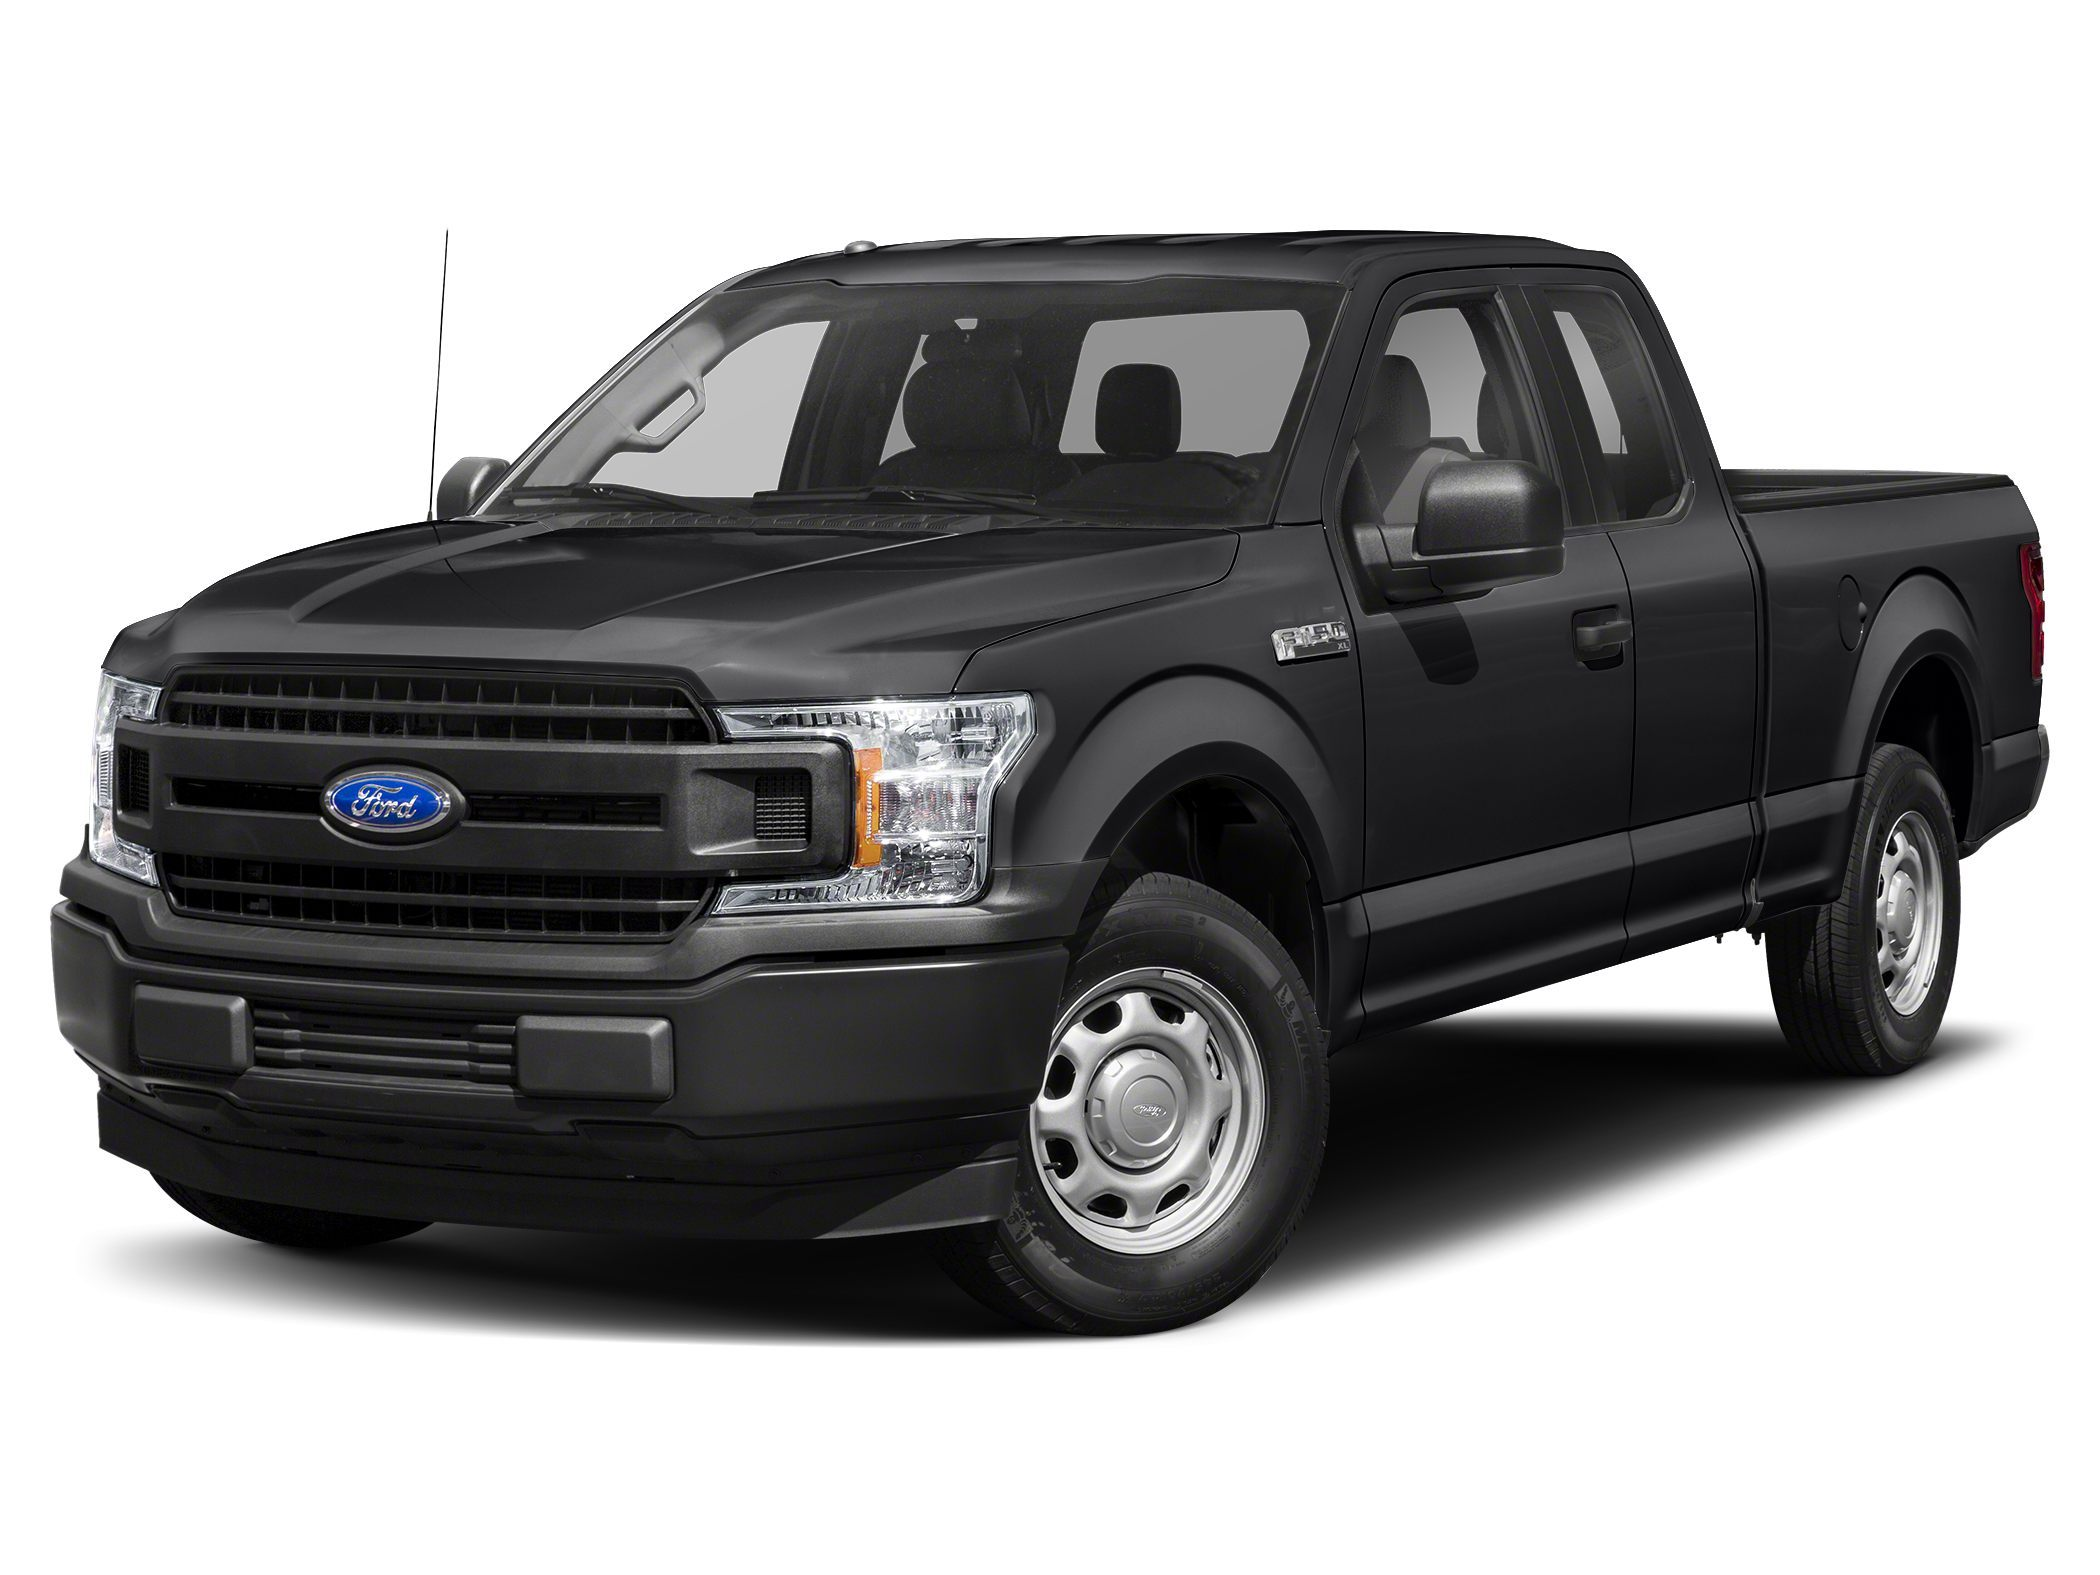 used 2019 Ford F-150 car, priced at $39,997